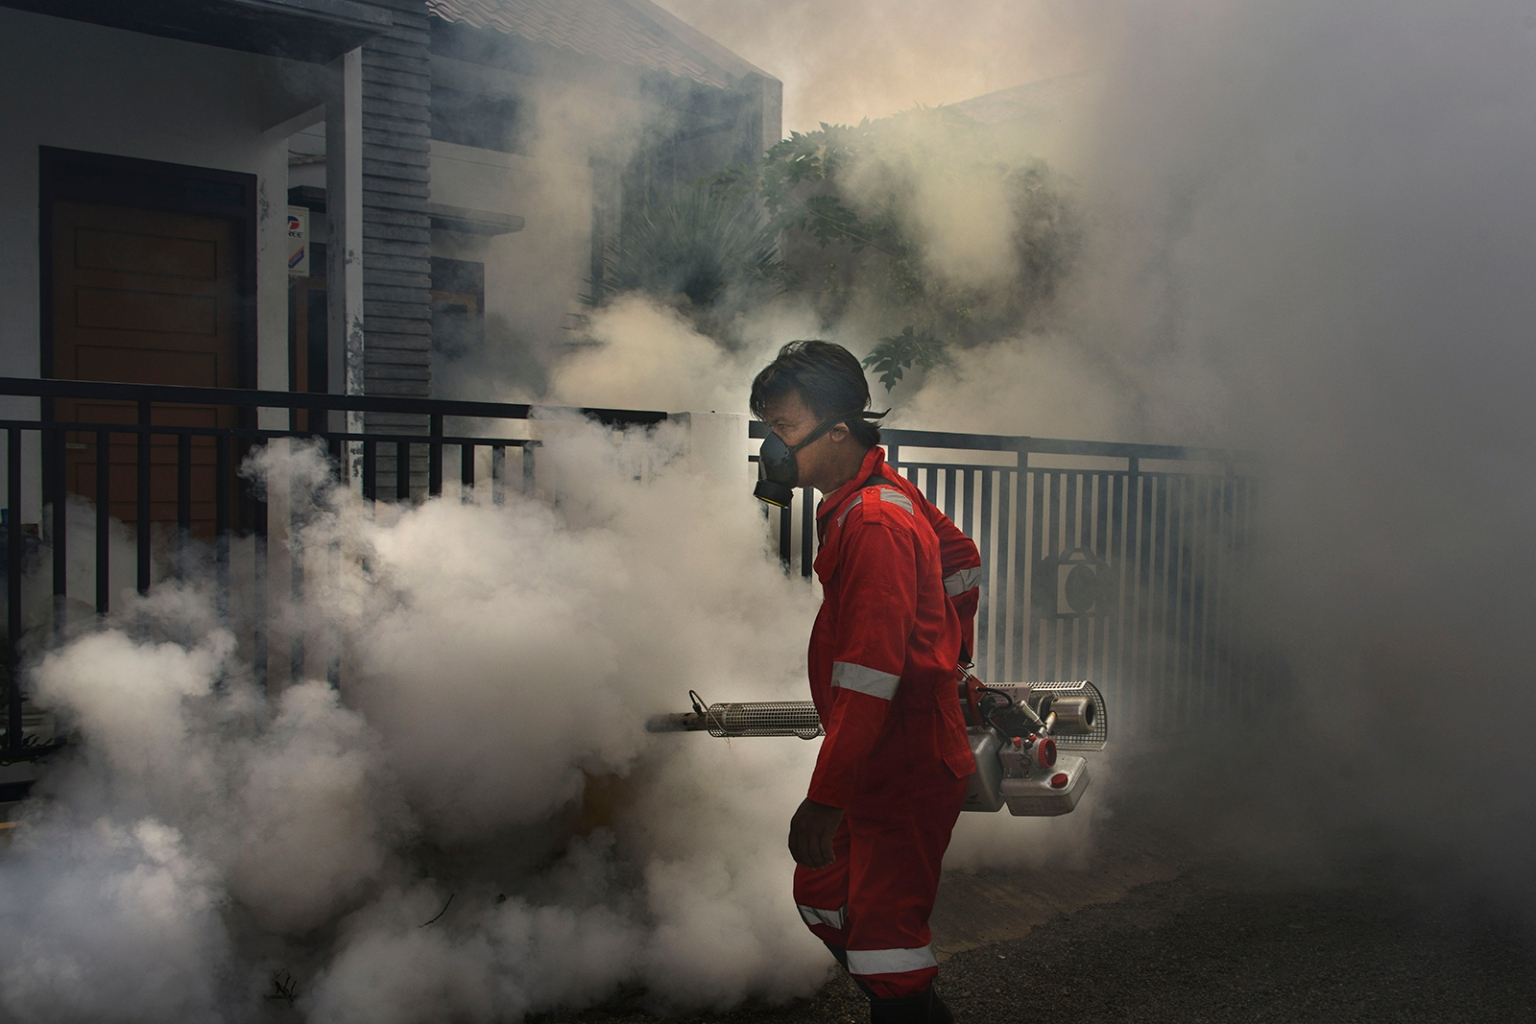 An Indonesian worker conducts mosquito fogging to minimize dengue fever cases in Banda Aceh on July 3. CHAIDEER MAHYUDDIN/AFP/Getty Images